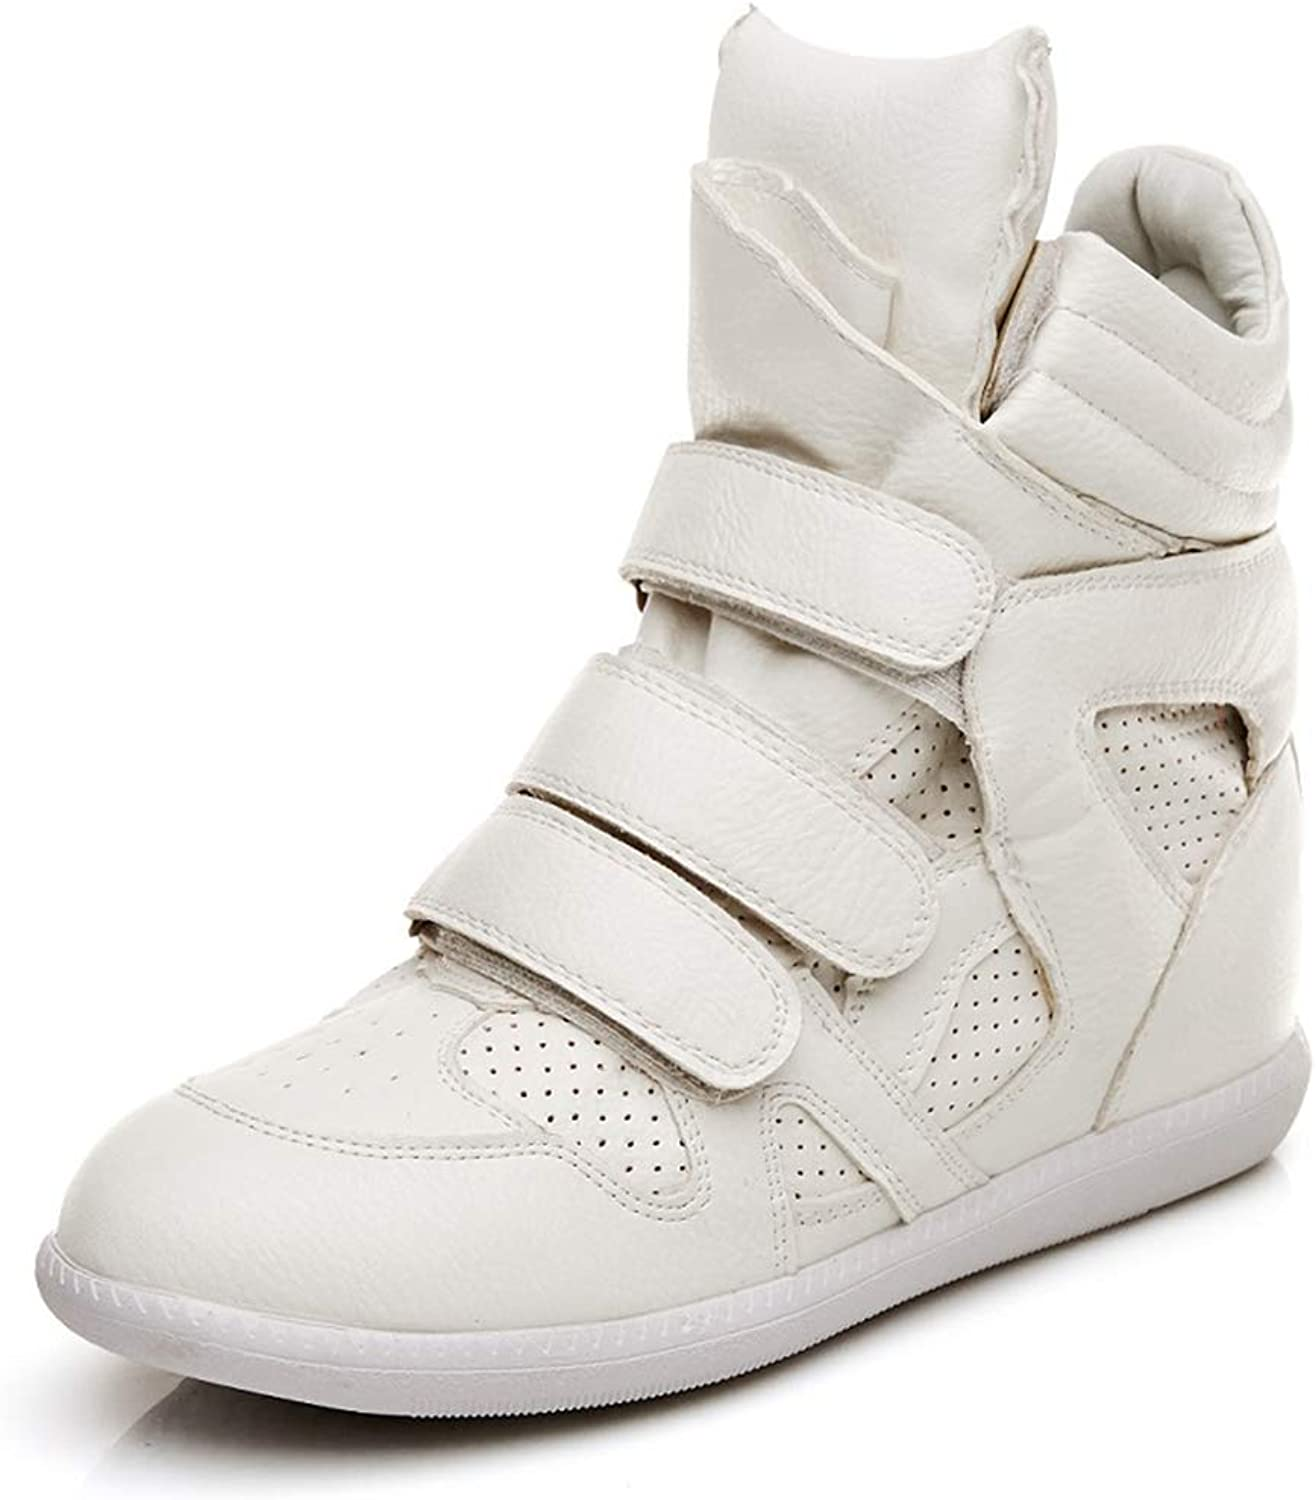 T-JULY Women High Top Hidden Wedges White Sneakers Female Casual Basket Ankle Sneakers